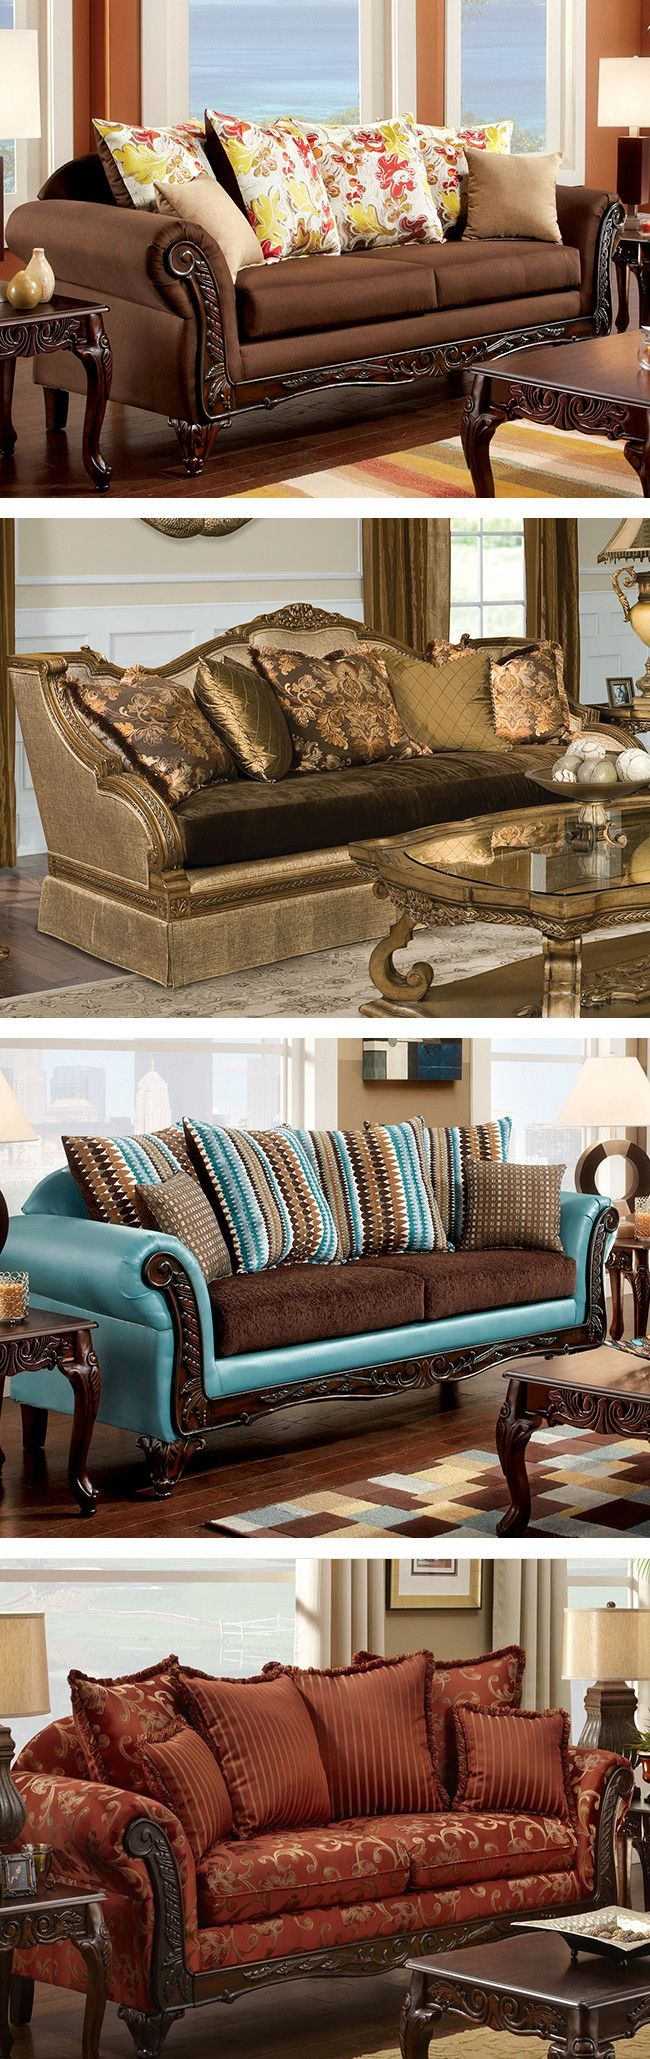 Looking for a stylish and affordable sofa  Visit Wayfair and sign up today  to get. Best 25  Affordable sofas ideas on Pinterest